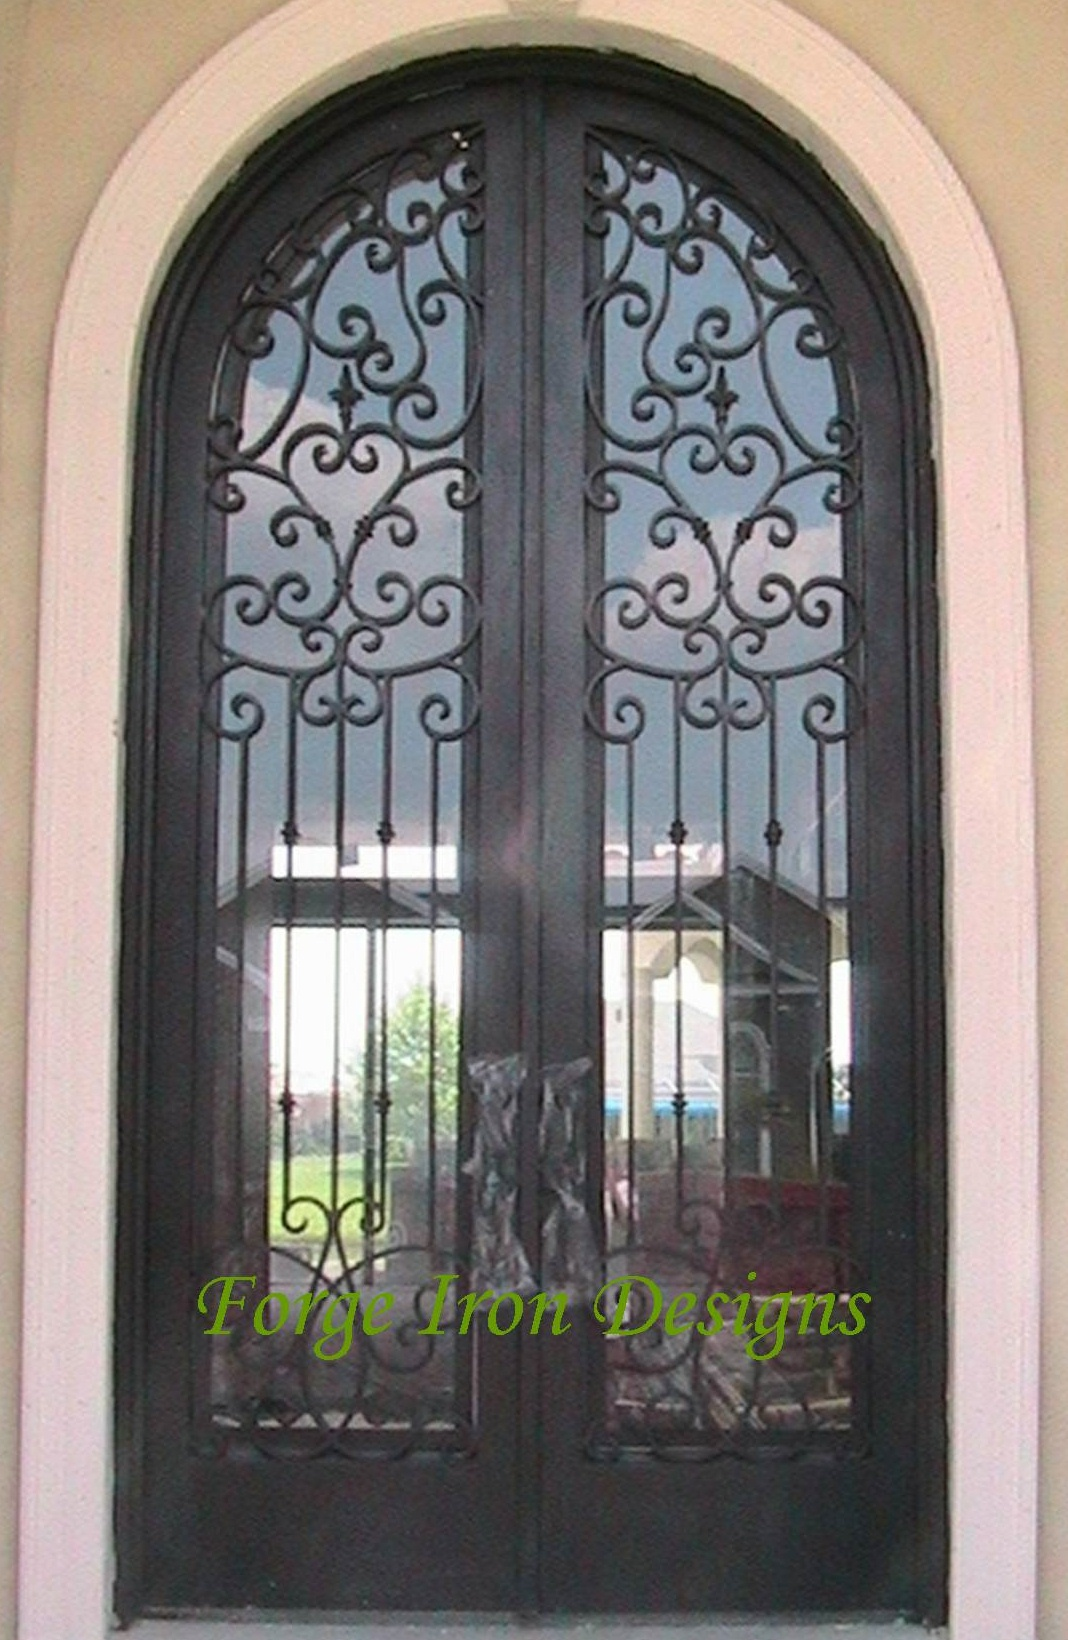 1640 #637830 Wrought Iron Doors Wine Cellar Doors Forge Iron Products AAW Wood  pic Wood Wrought Iron Doors 43111068